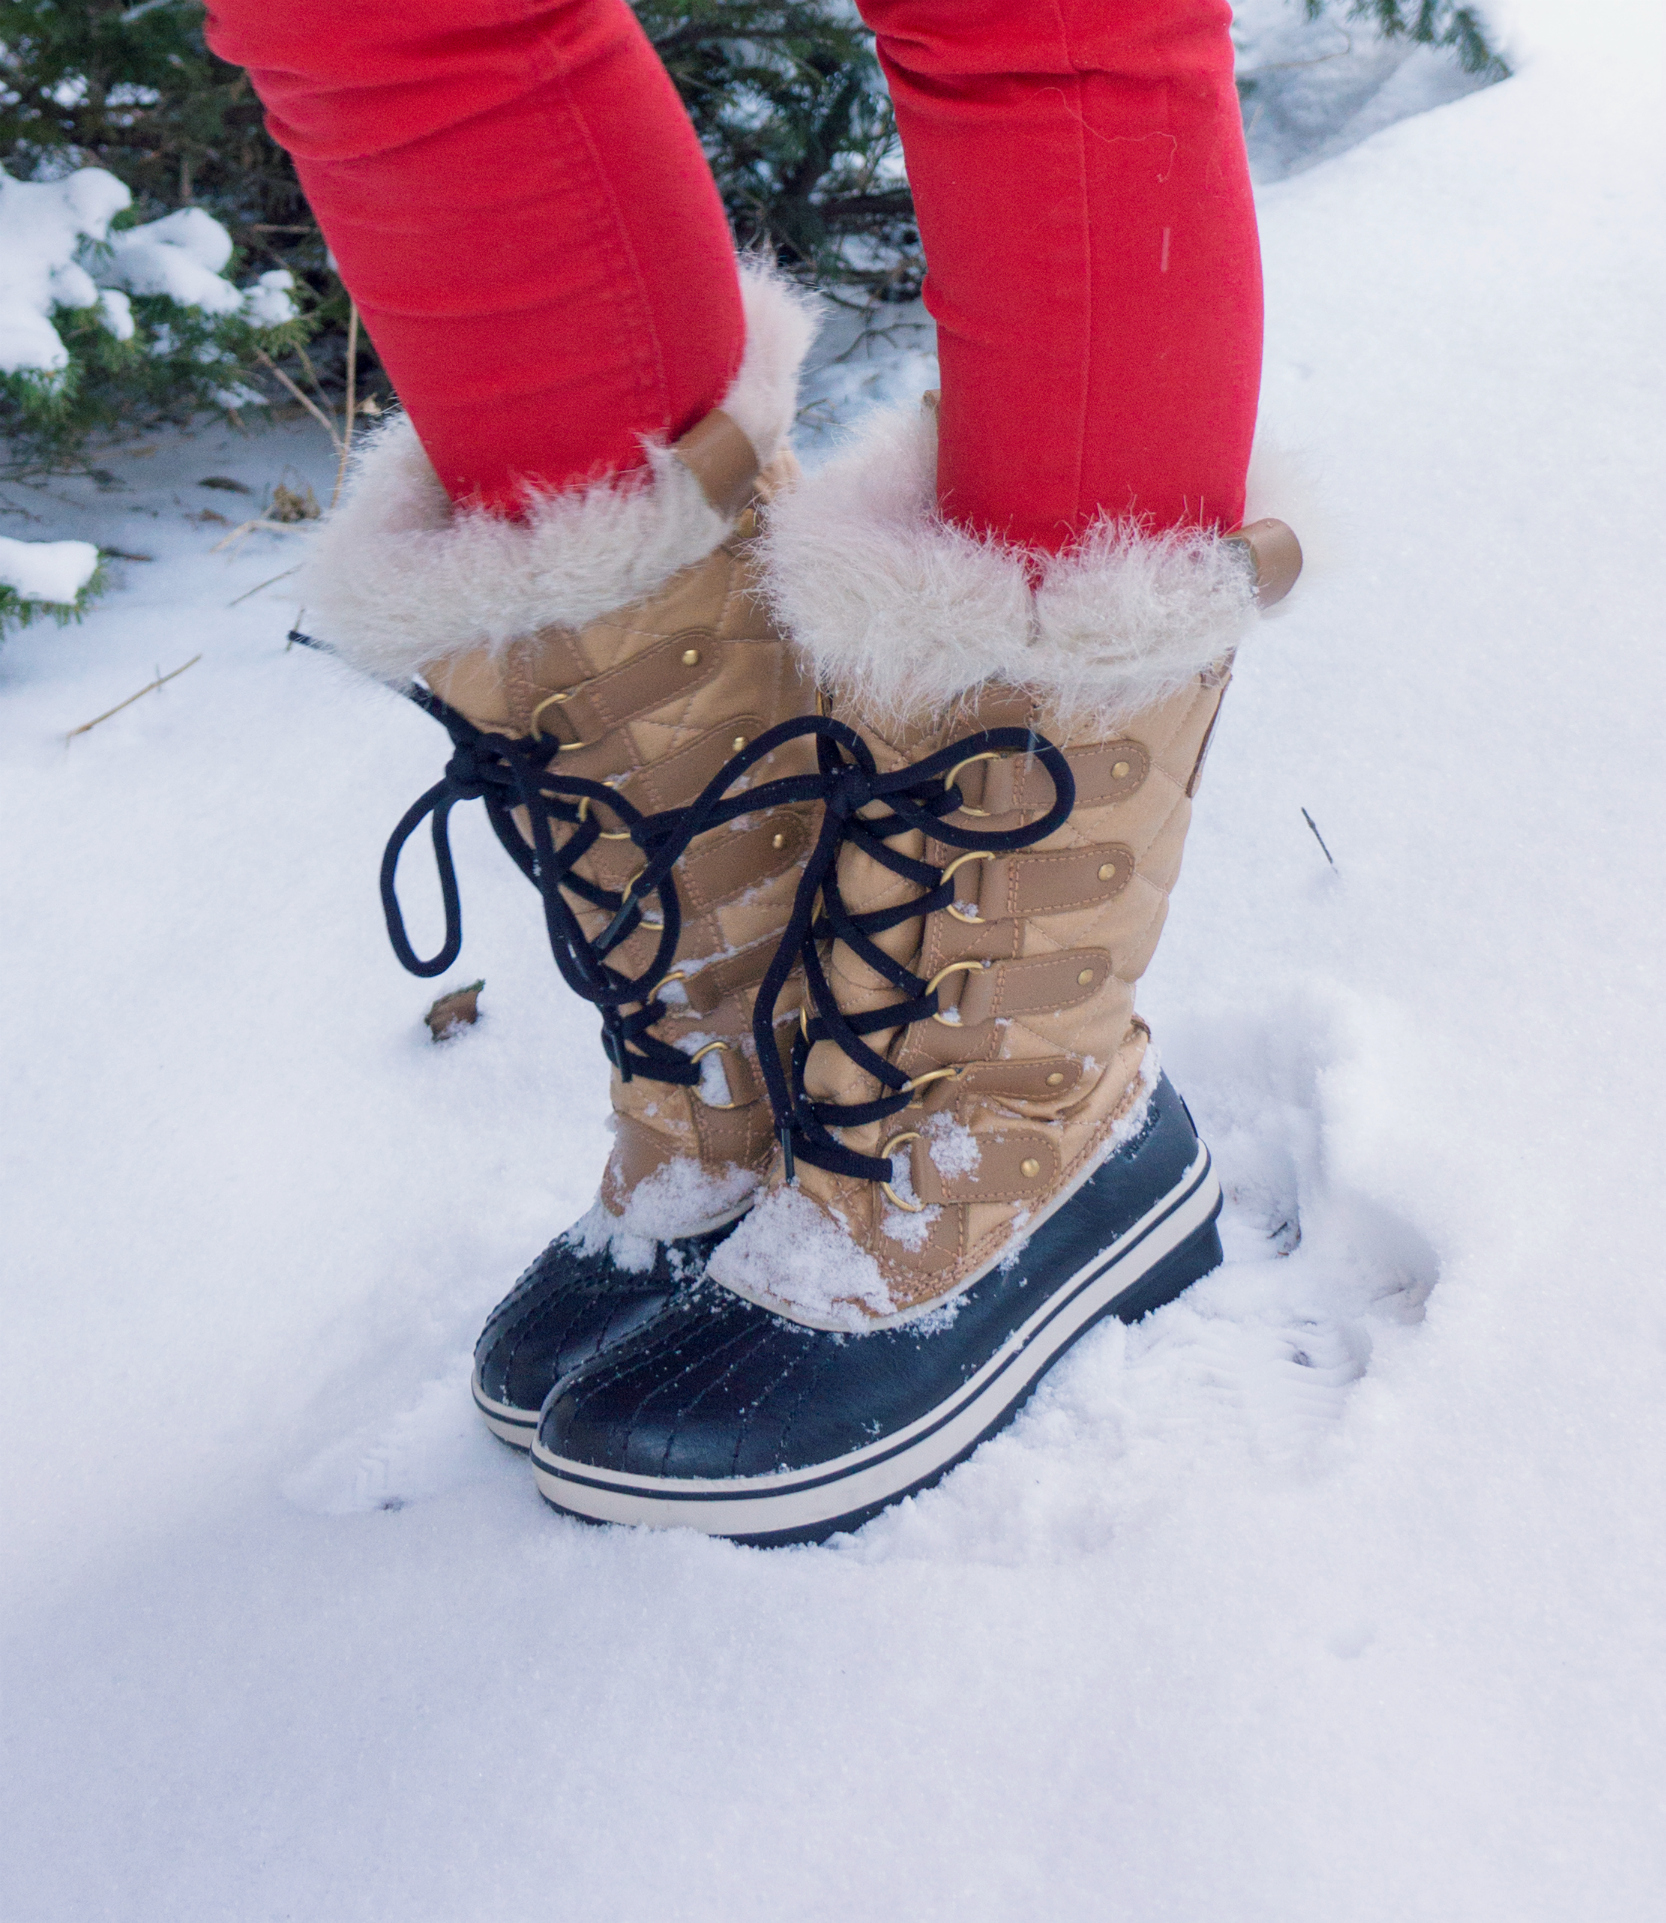 Winter fashion tofino Sorel boots